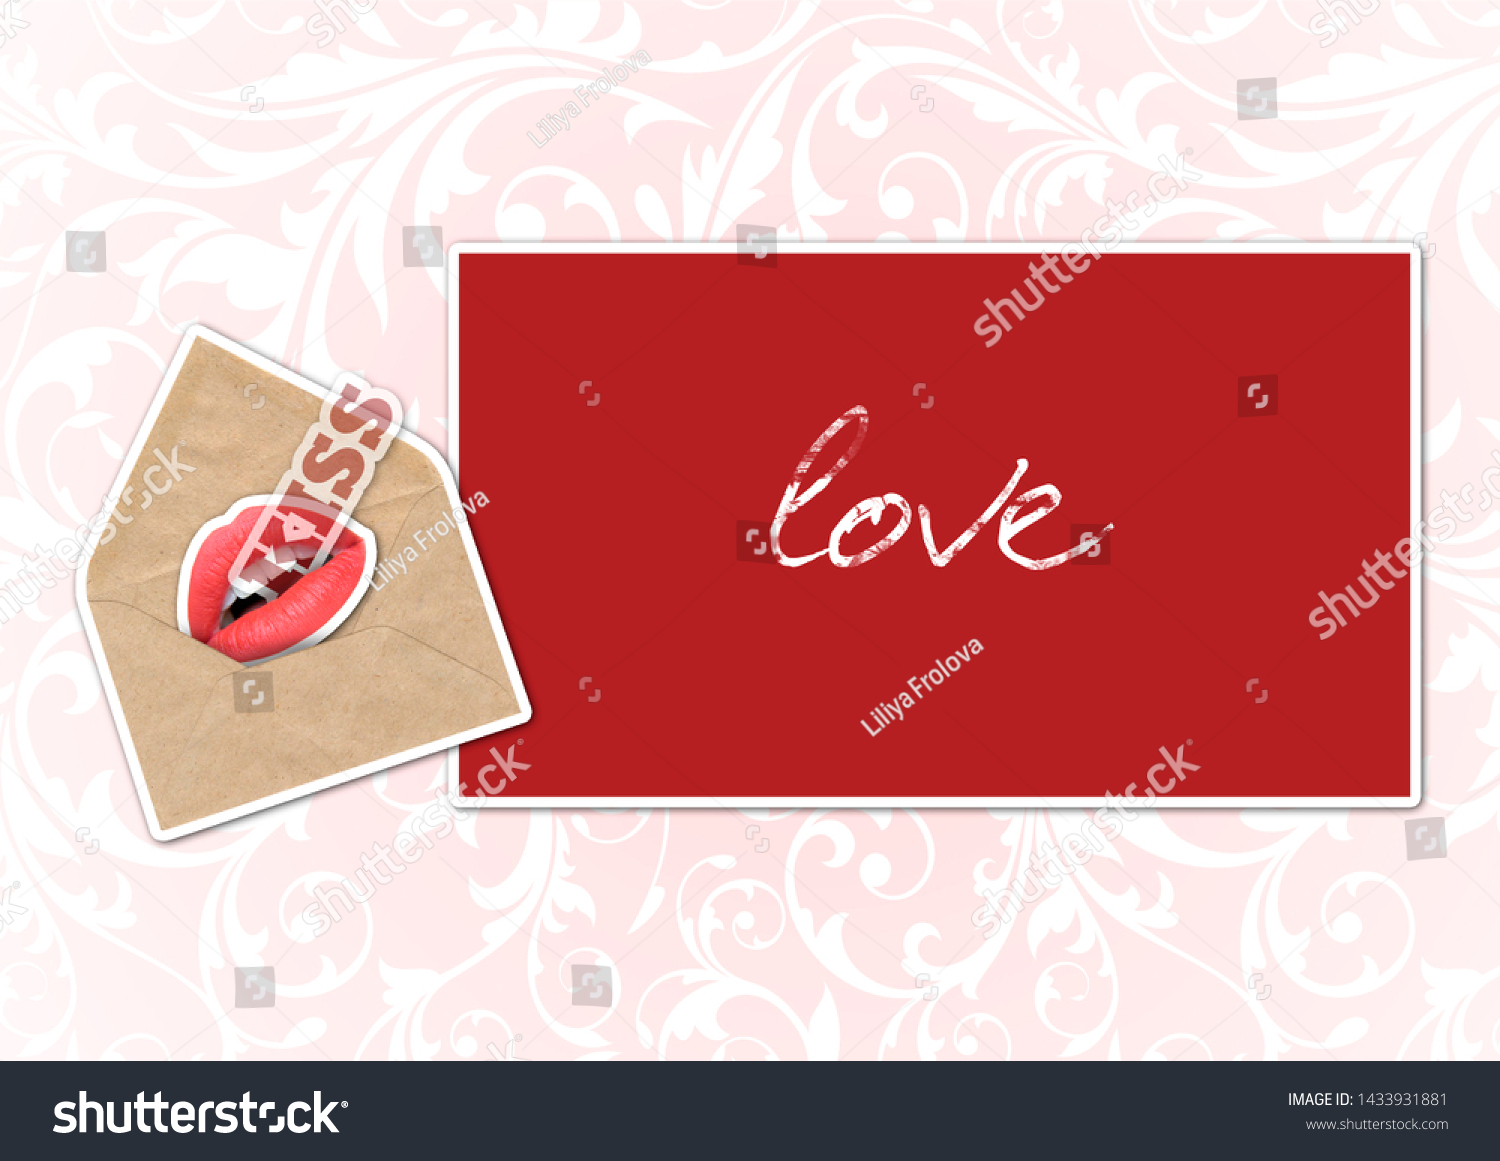 Letter To Your Loved One from image.shutterstock.com